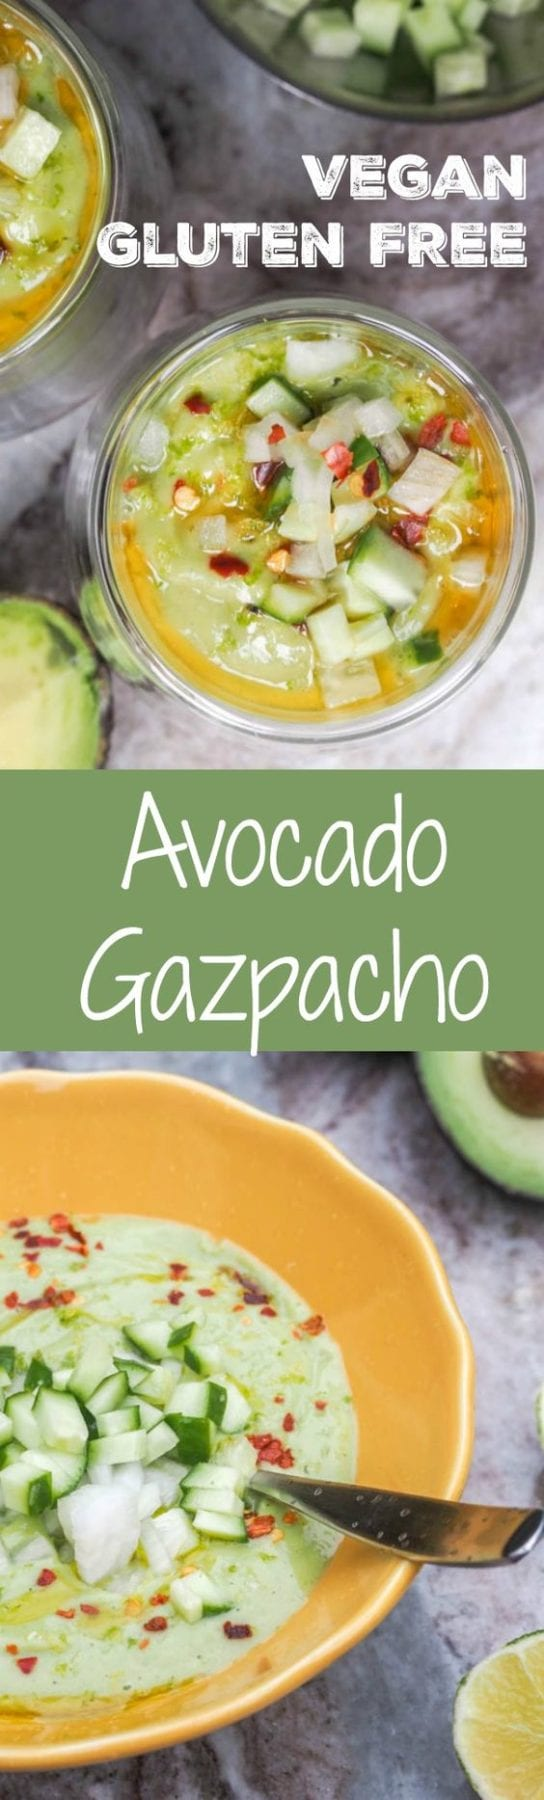 avocado soup pin